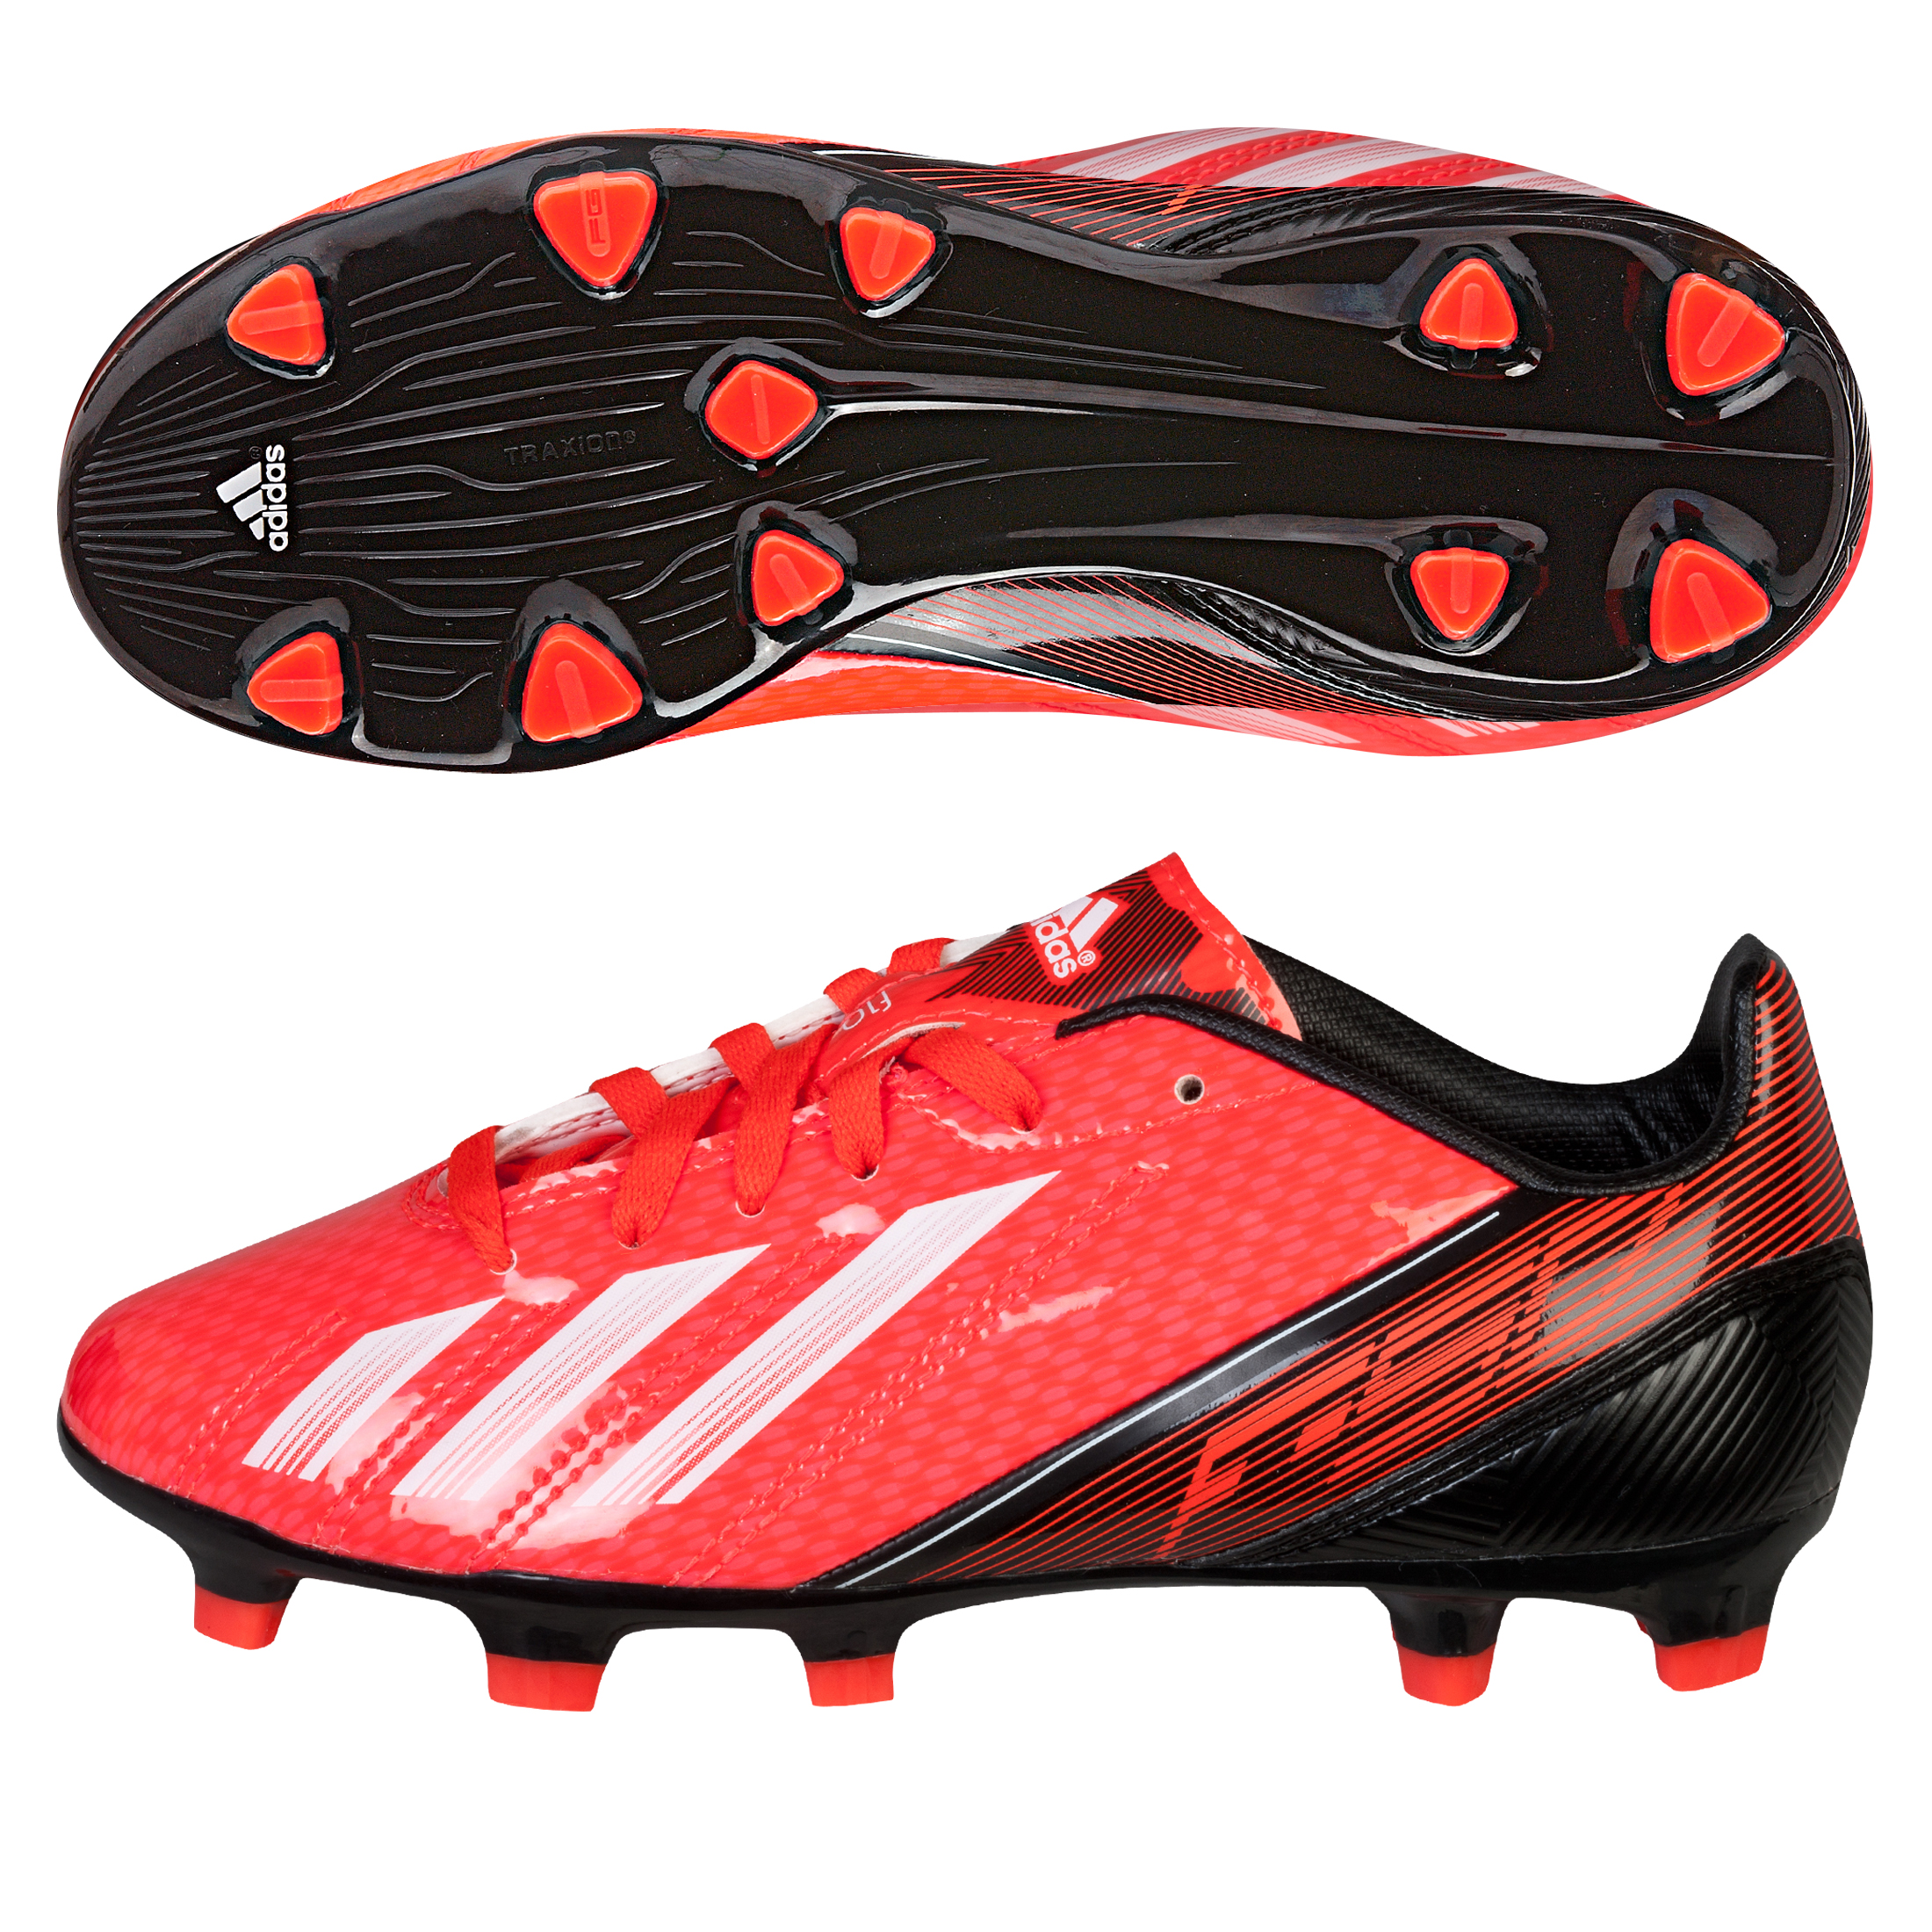 Adidas F10 TRX Firm Ground Football Boots Red